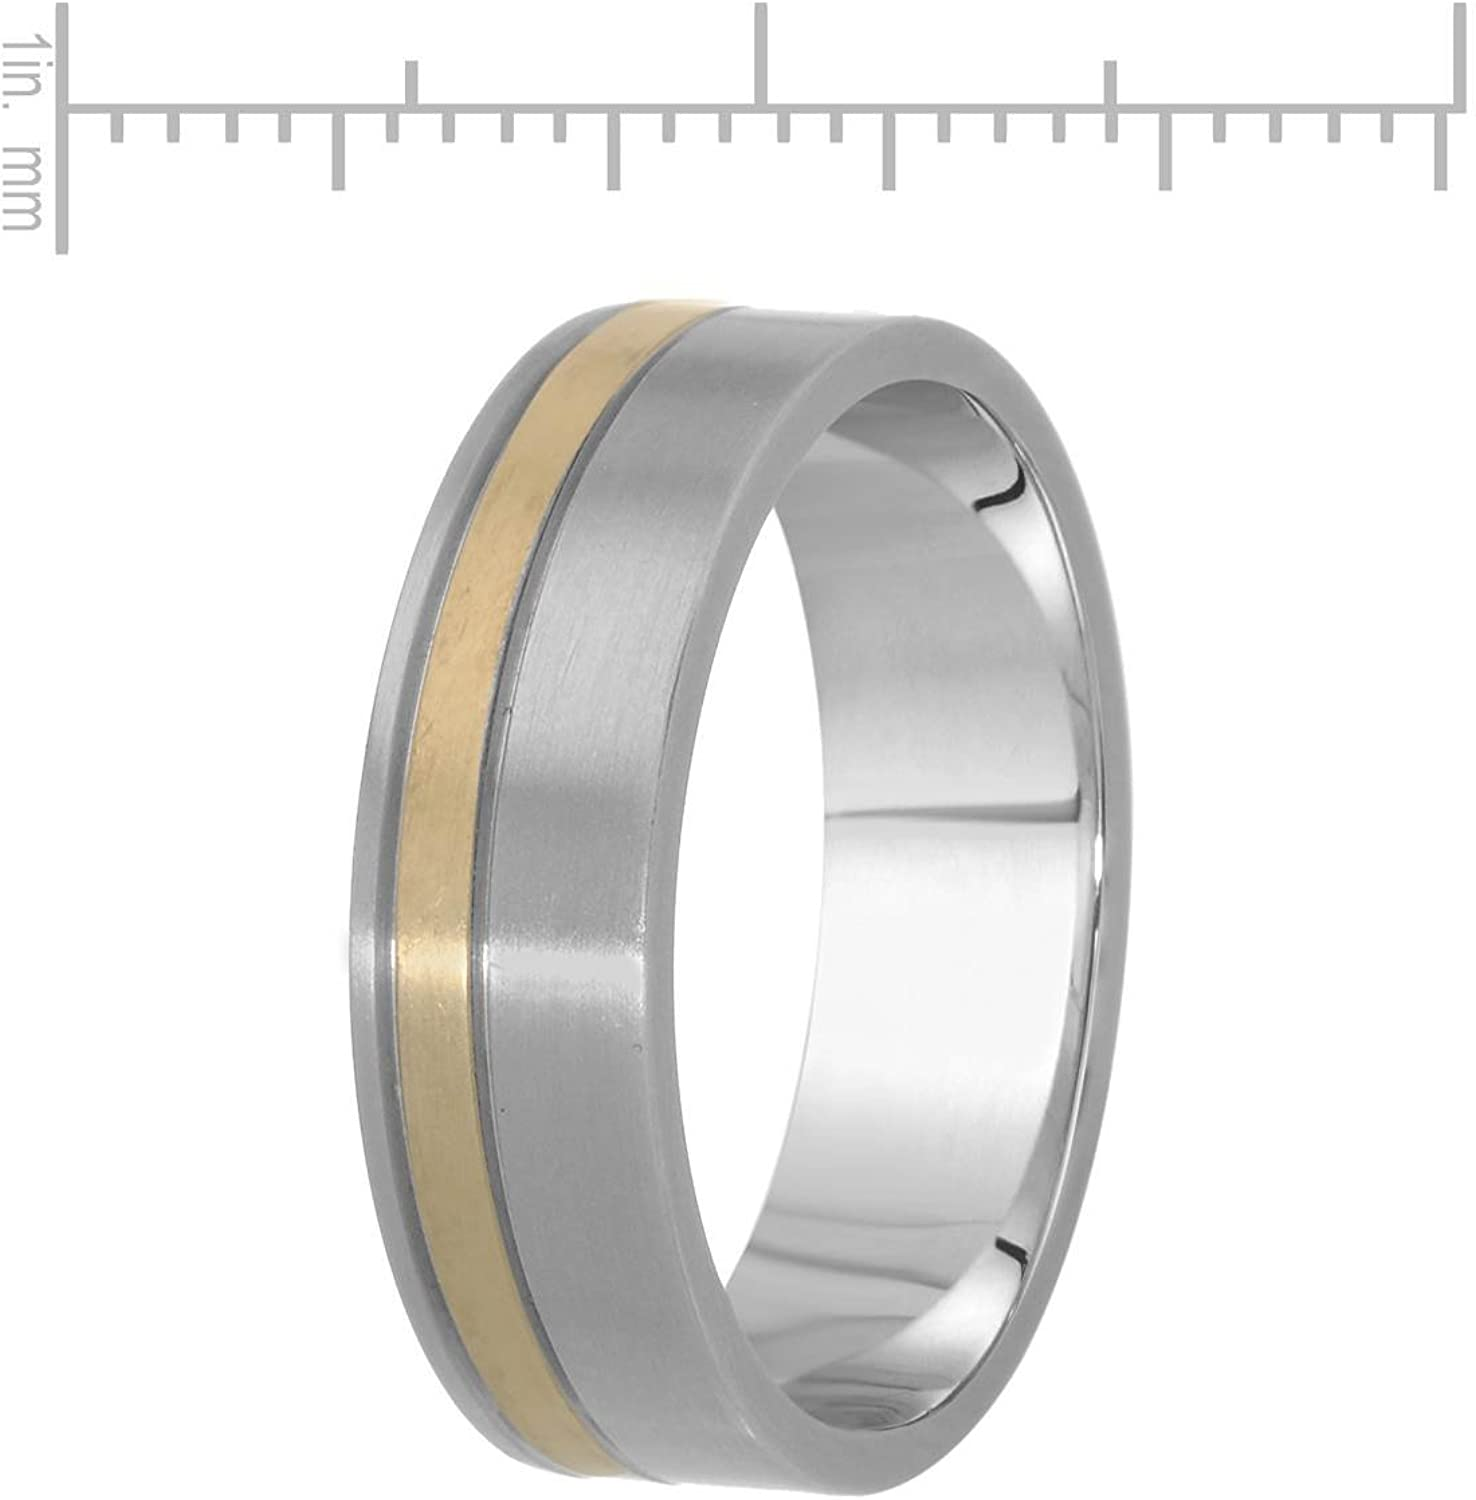 VS1 Diamond Band Ring. Teno Stainless Steel With Gold Inlay 0.02 CTW Color F